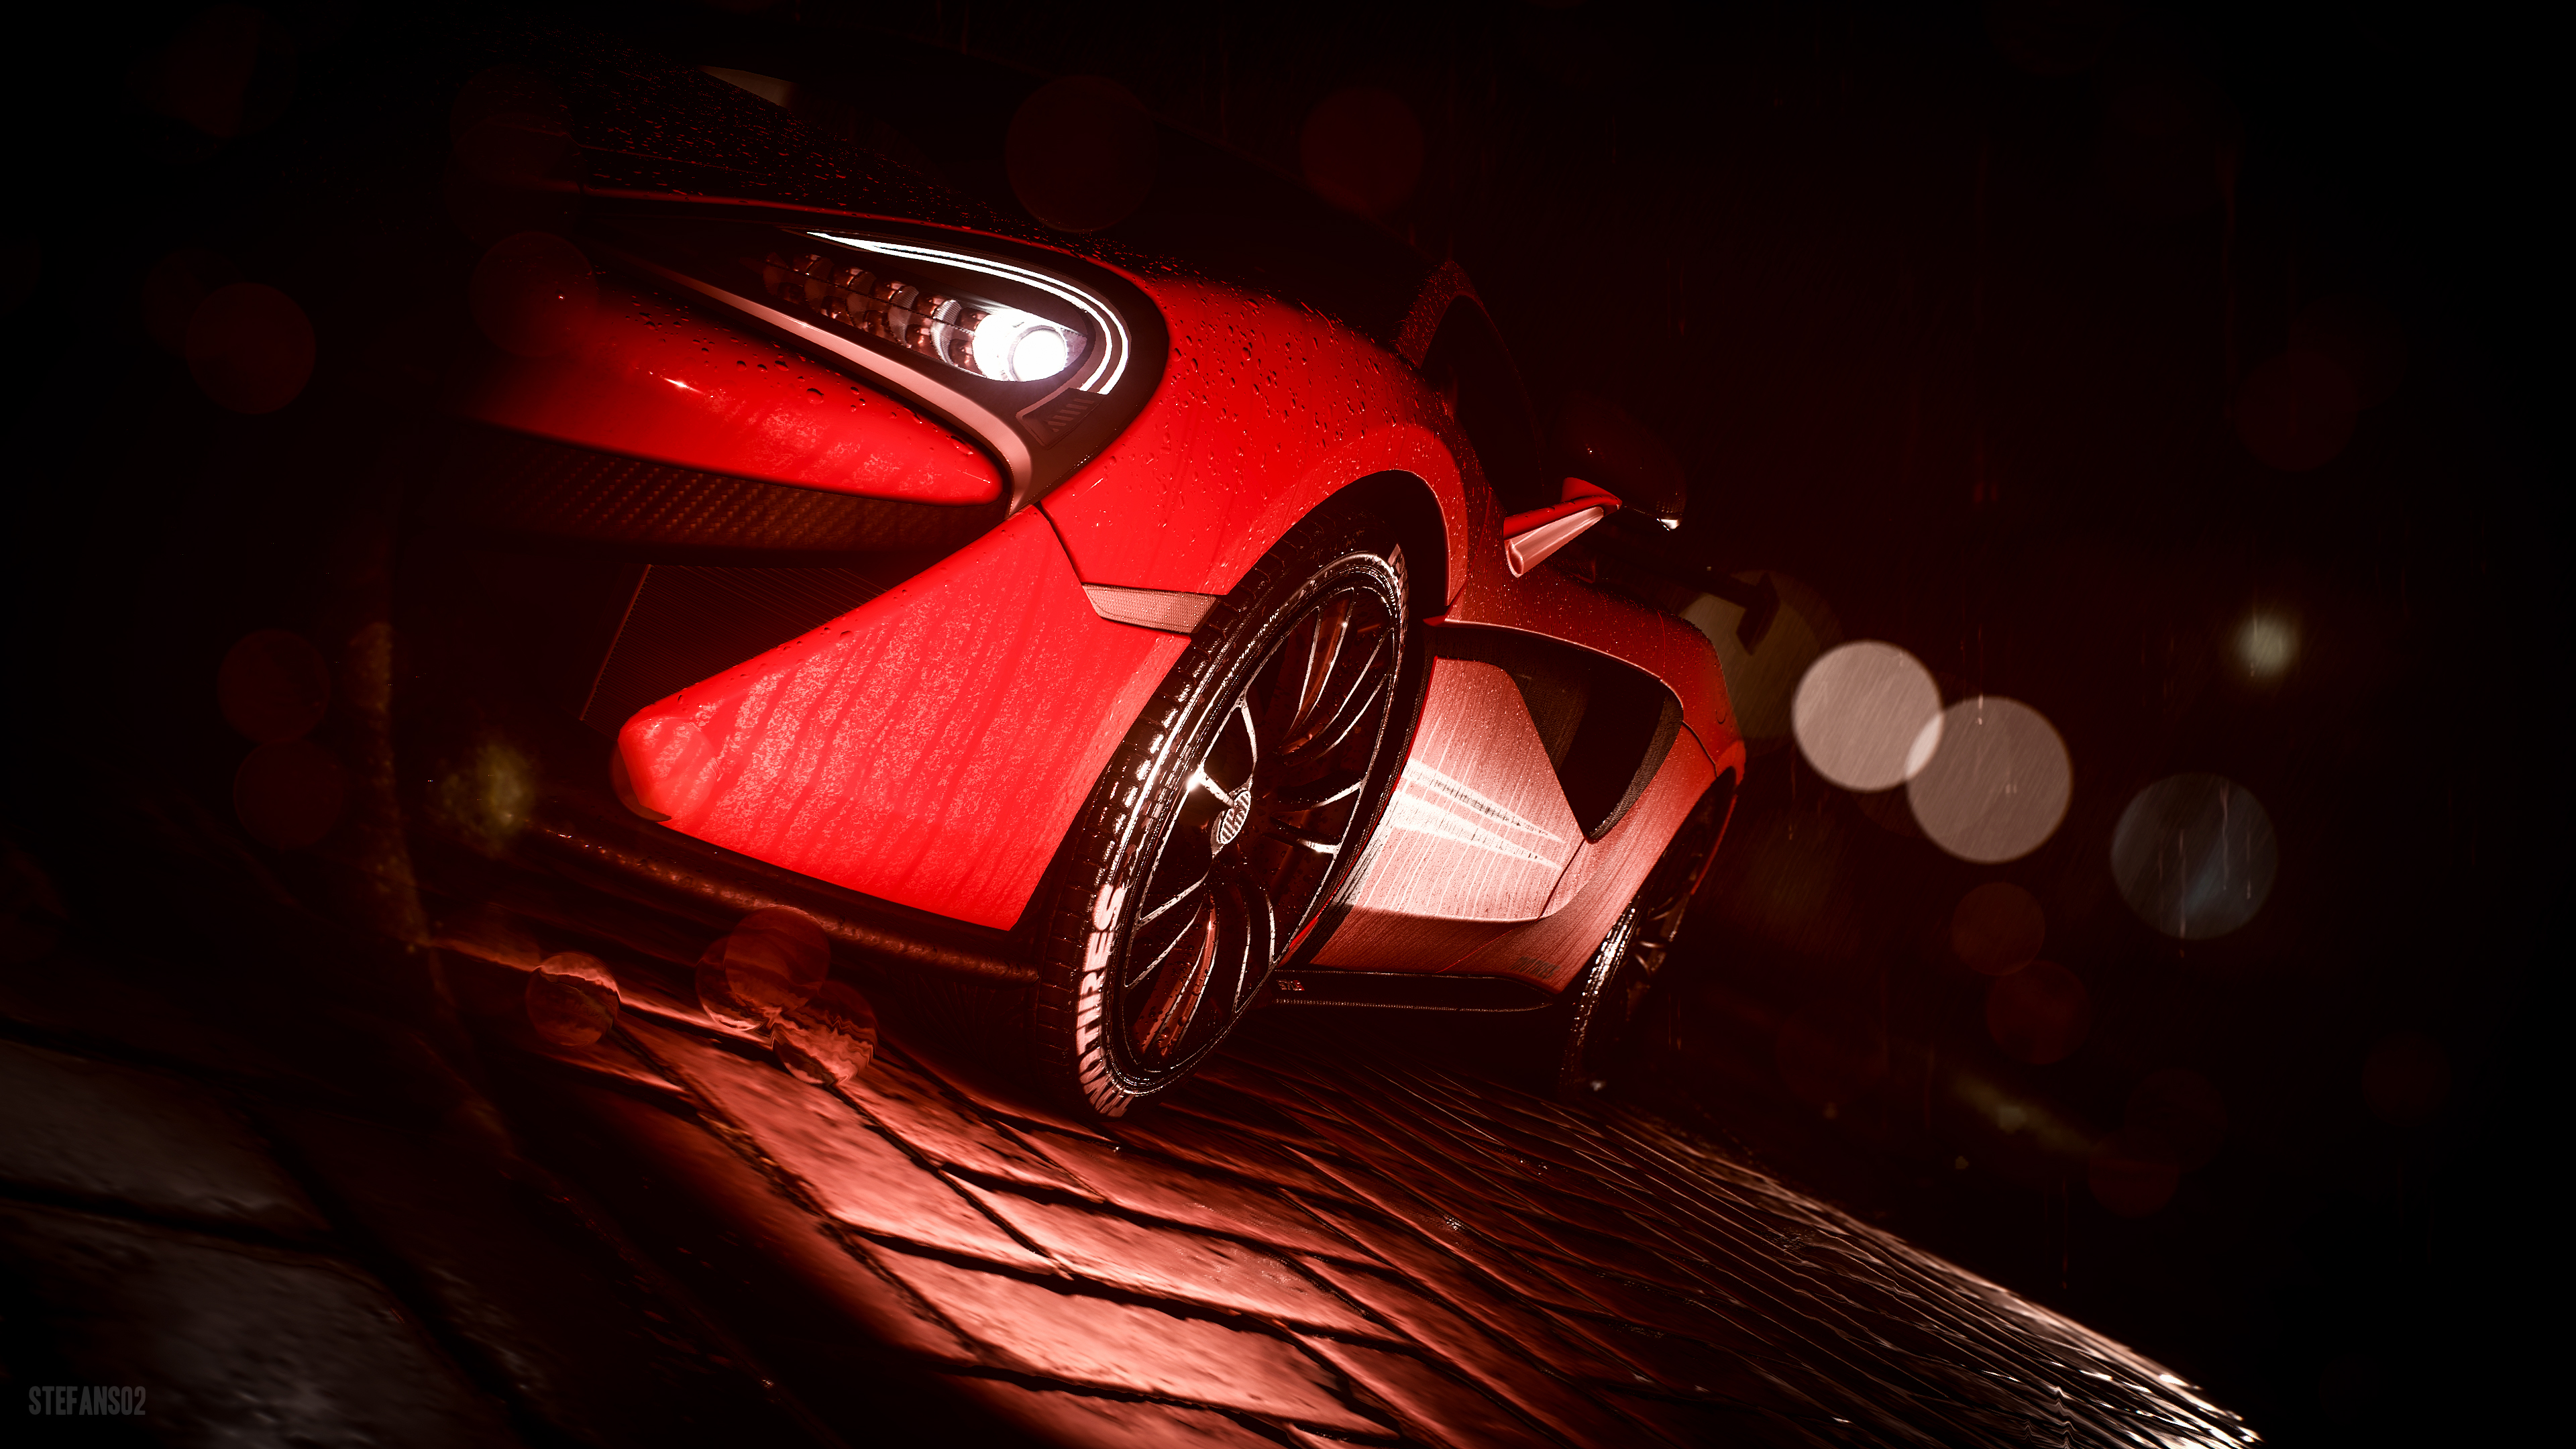 Need For Speed Dressed In Red 4k Ultra Hd Wallpaper